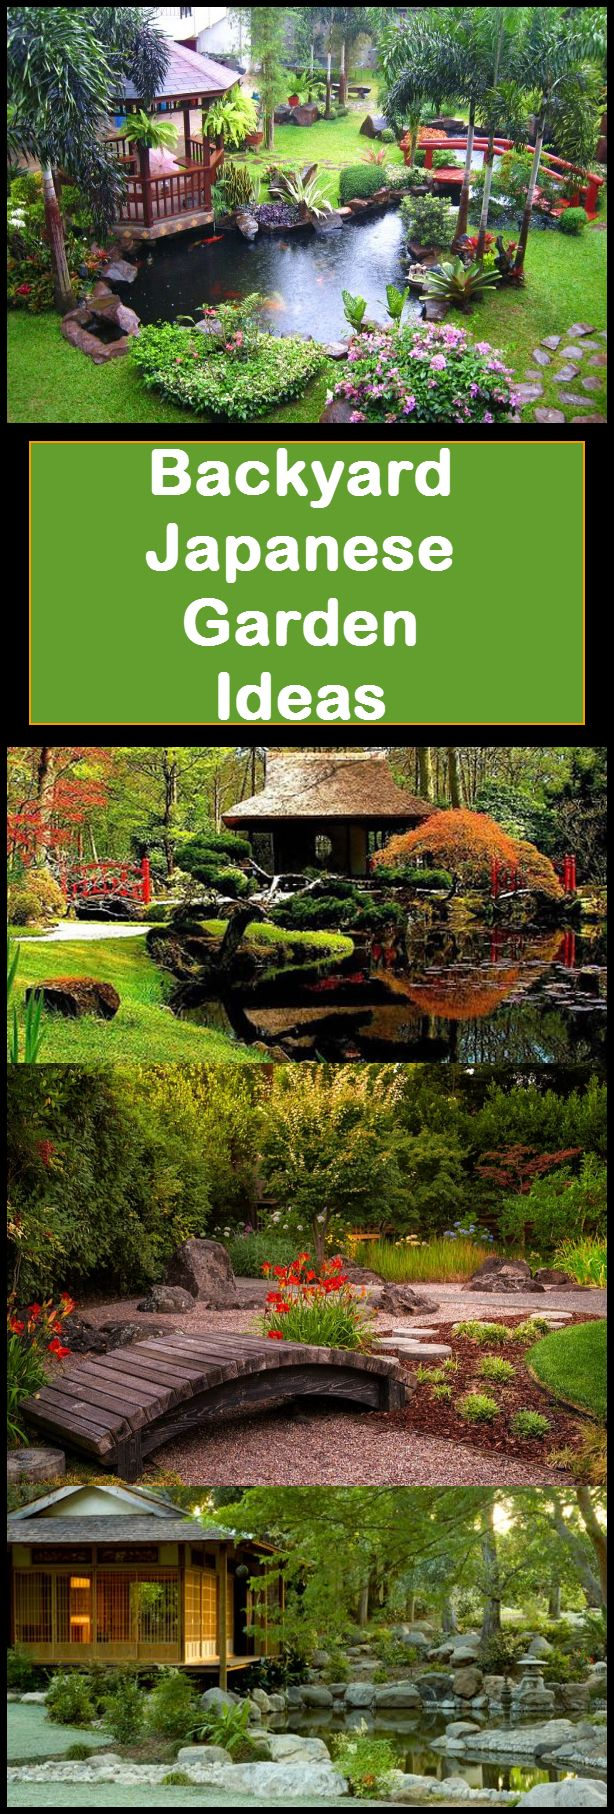 If you're looking for a place to unwind in the comfort of your own home, it is a perfectly good idea to create a Japanese garden in your backyard. Here are some tips to help you design your own garden:  http://involvery.com/backyard-japanese-garden-tips-and-ideas/